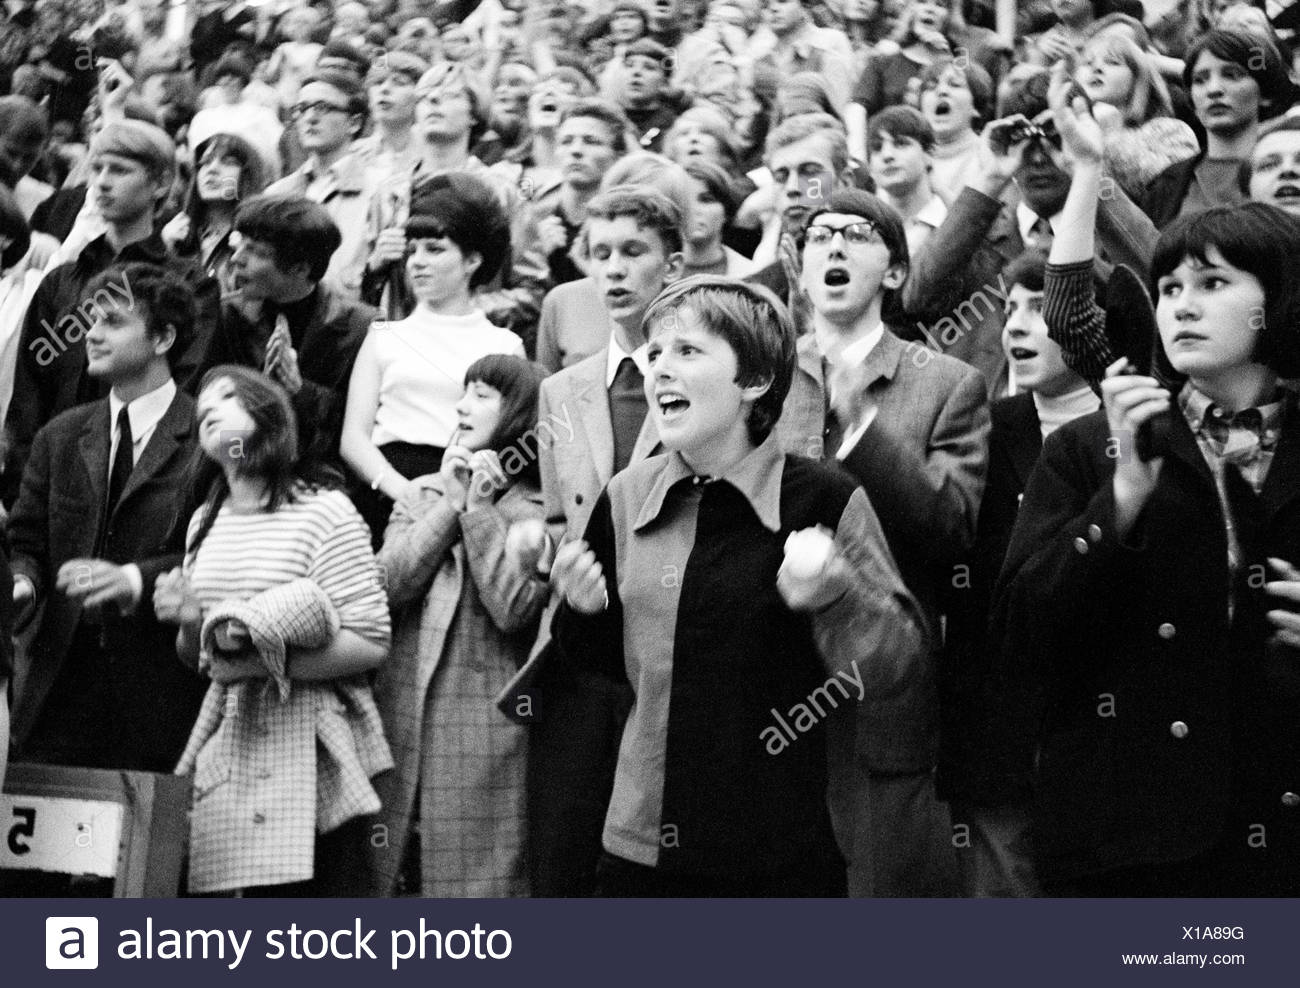 1960th 1966 Sixties follower fans excitement beat concert the Beatles enthusiasm Germany emotions Essen Grugahalle group youth - Stock Image